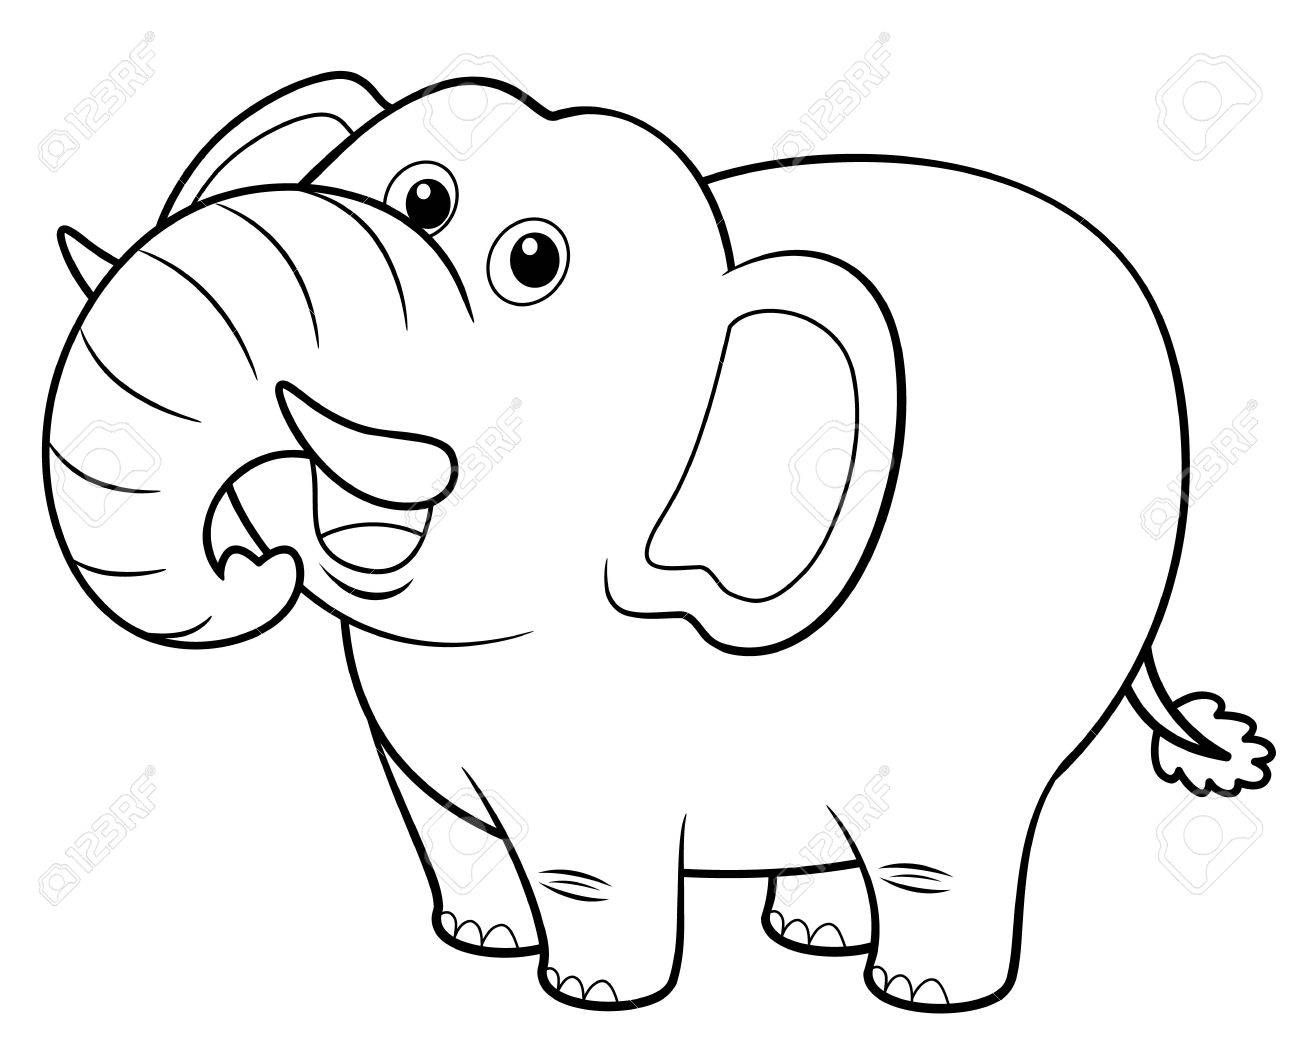 illustration of cartoon elephant coloring book stock vector 17120700 - Cartoon Coloring Book